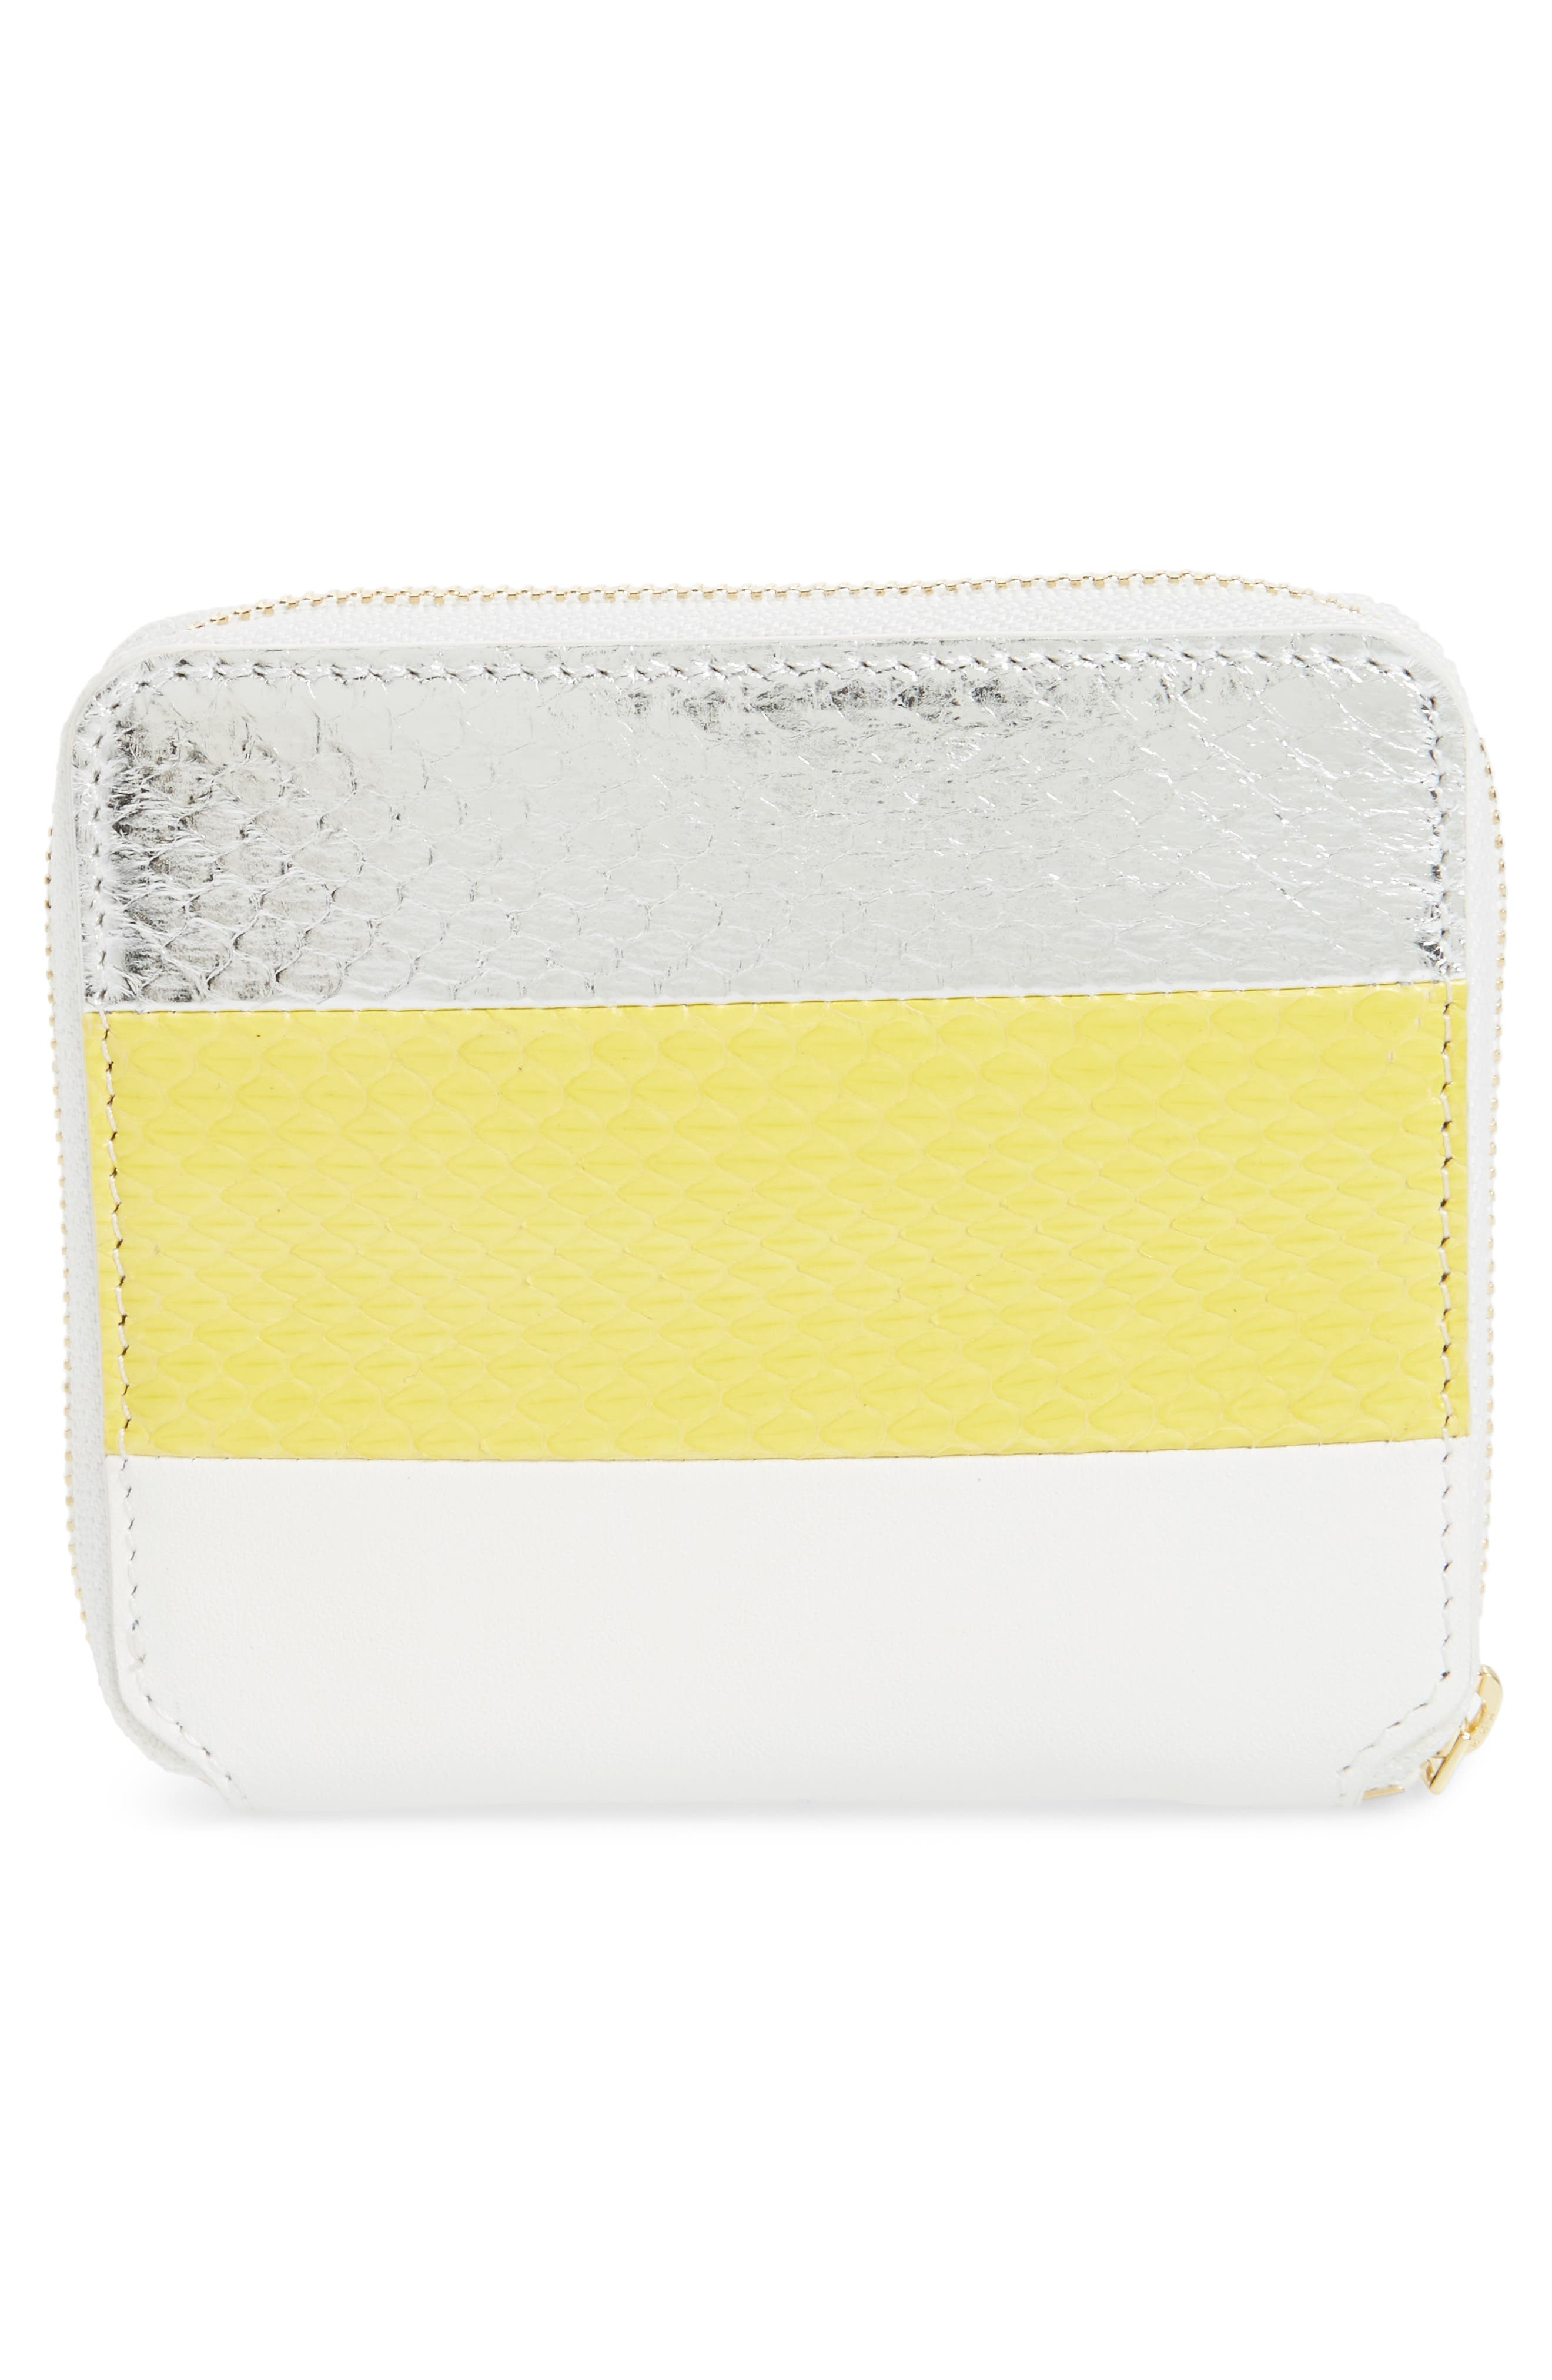 Small Leather & Genuine Snakeskin Zip Wallet,                             Alternate thumbnail 4, color,                             Yellow/ Silver/ White